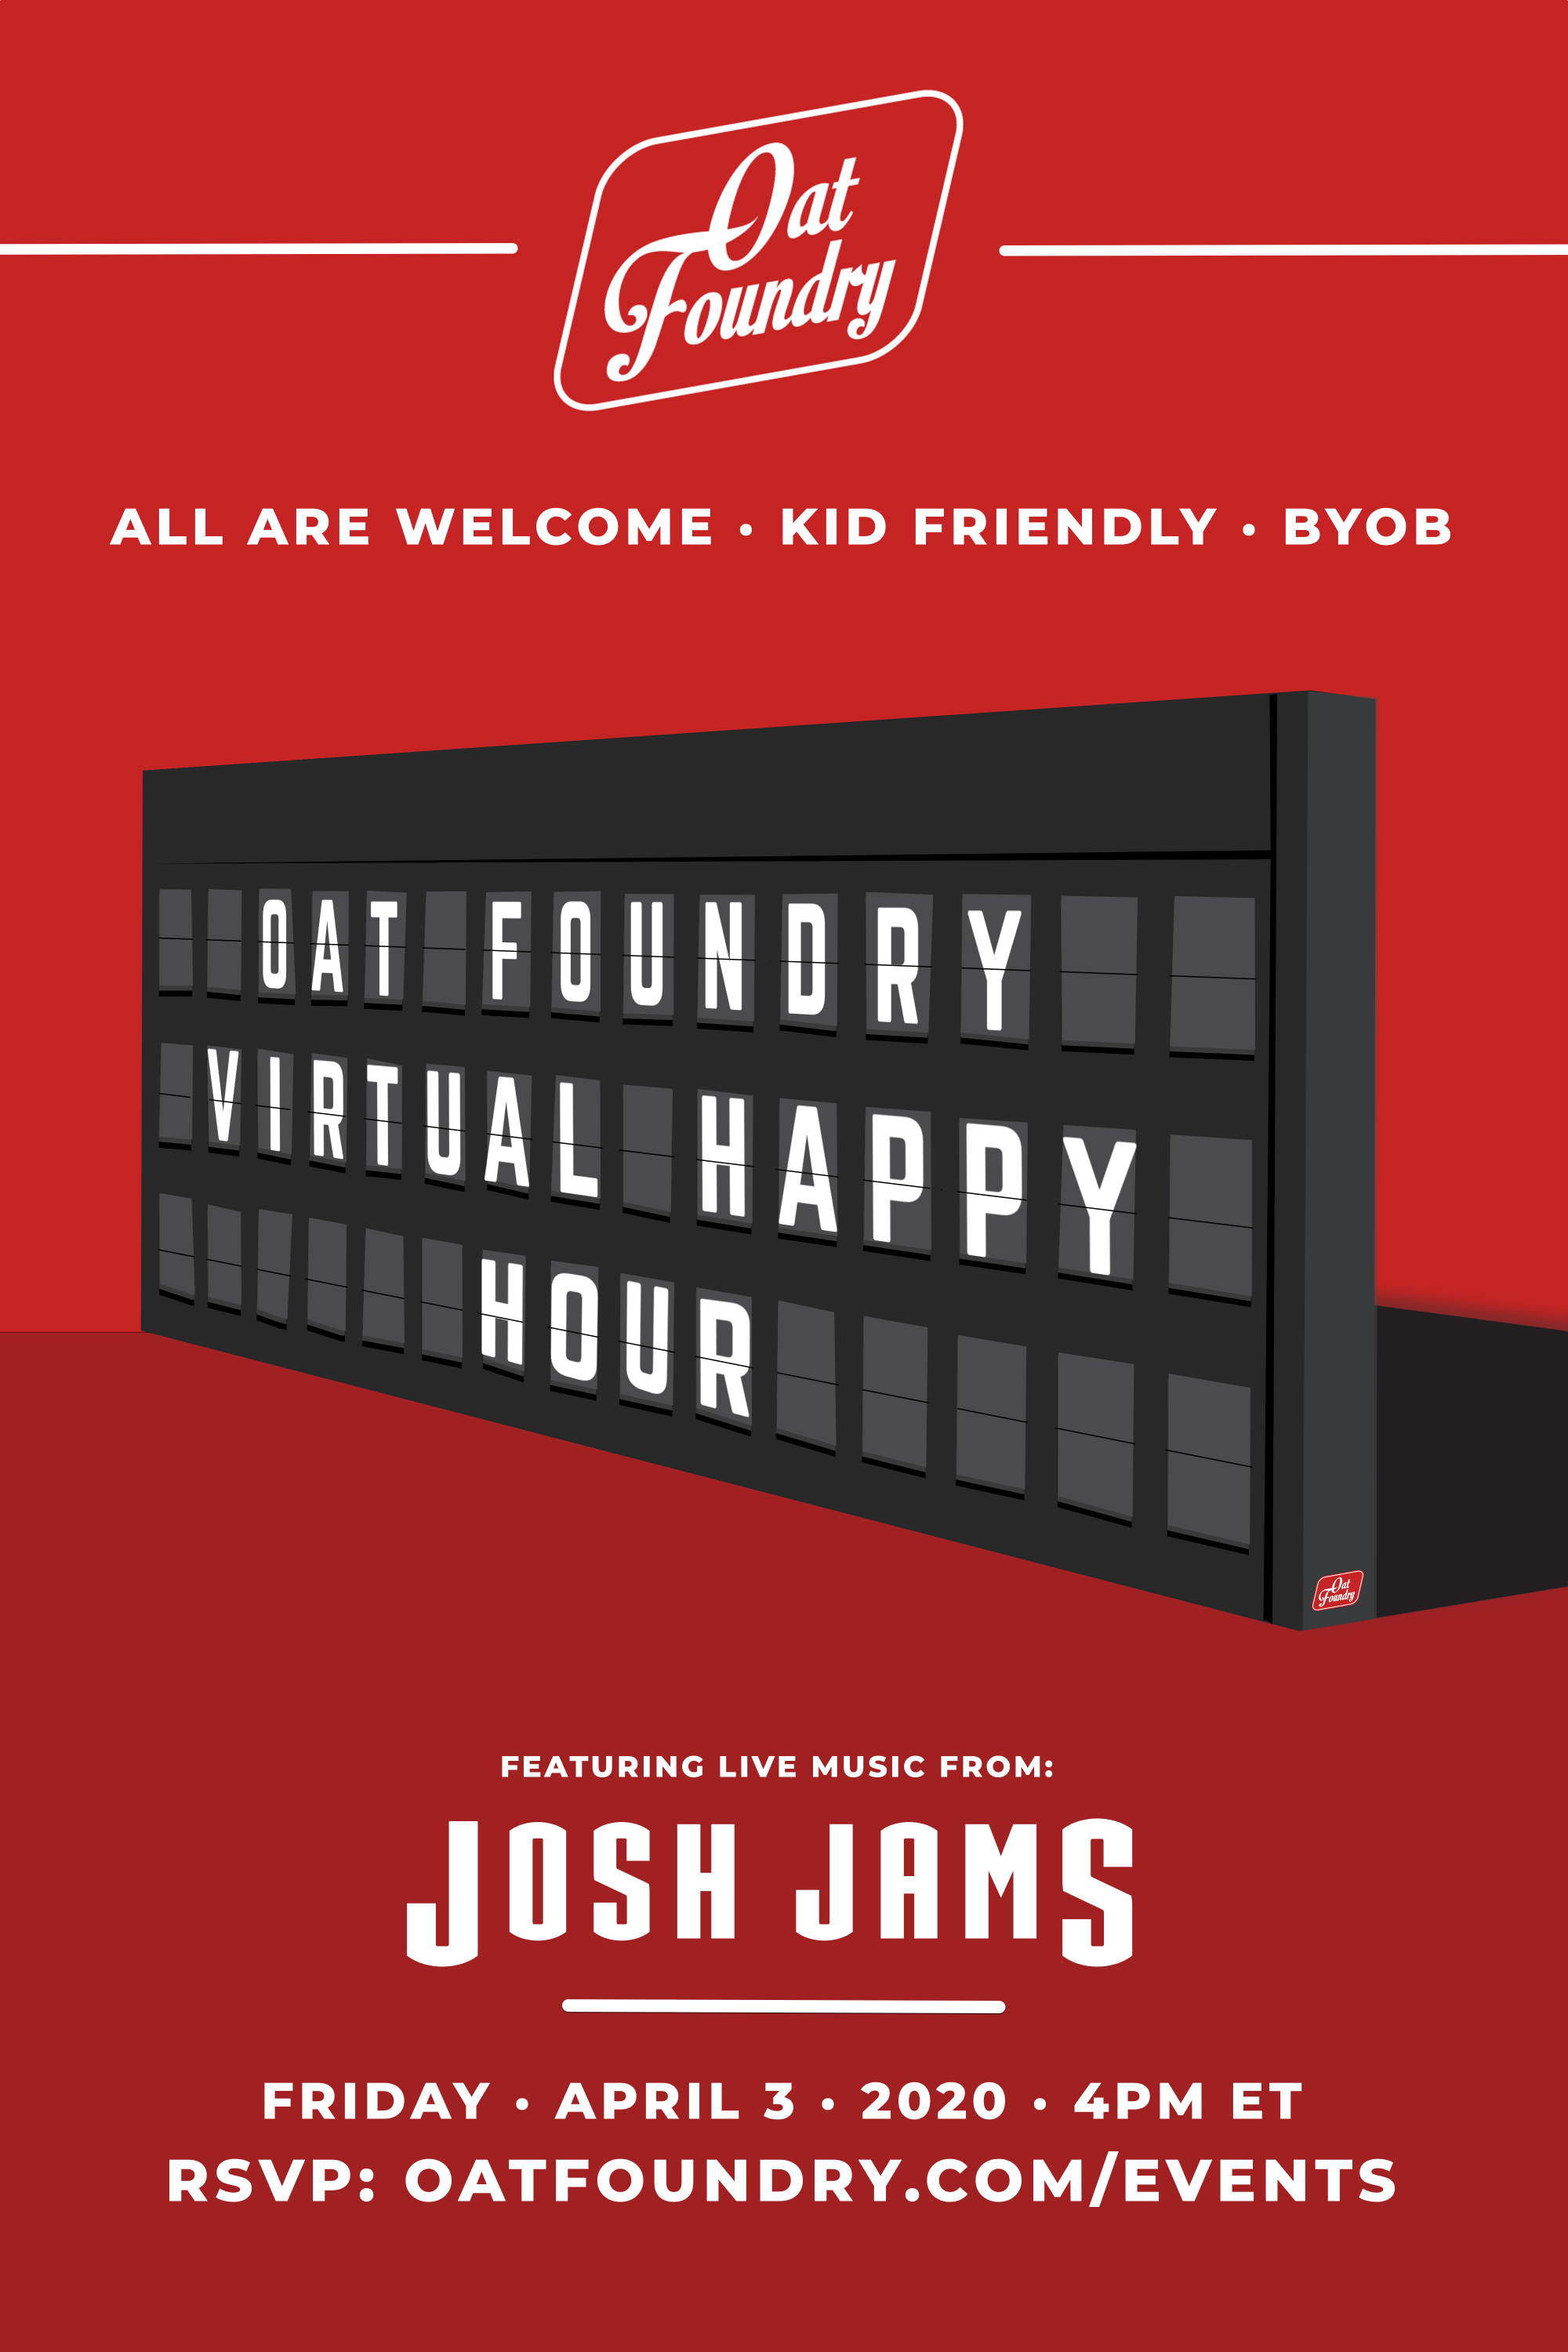 Oat Foundry Virtual Happy Hour